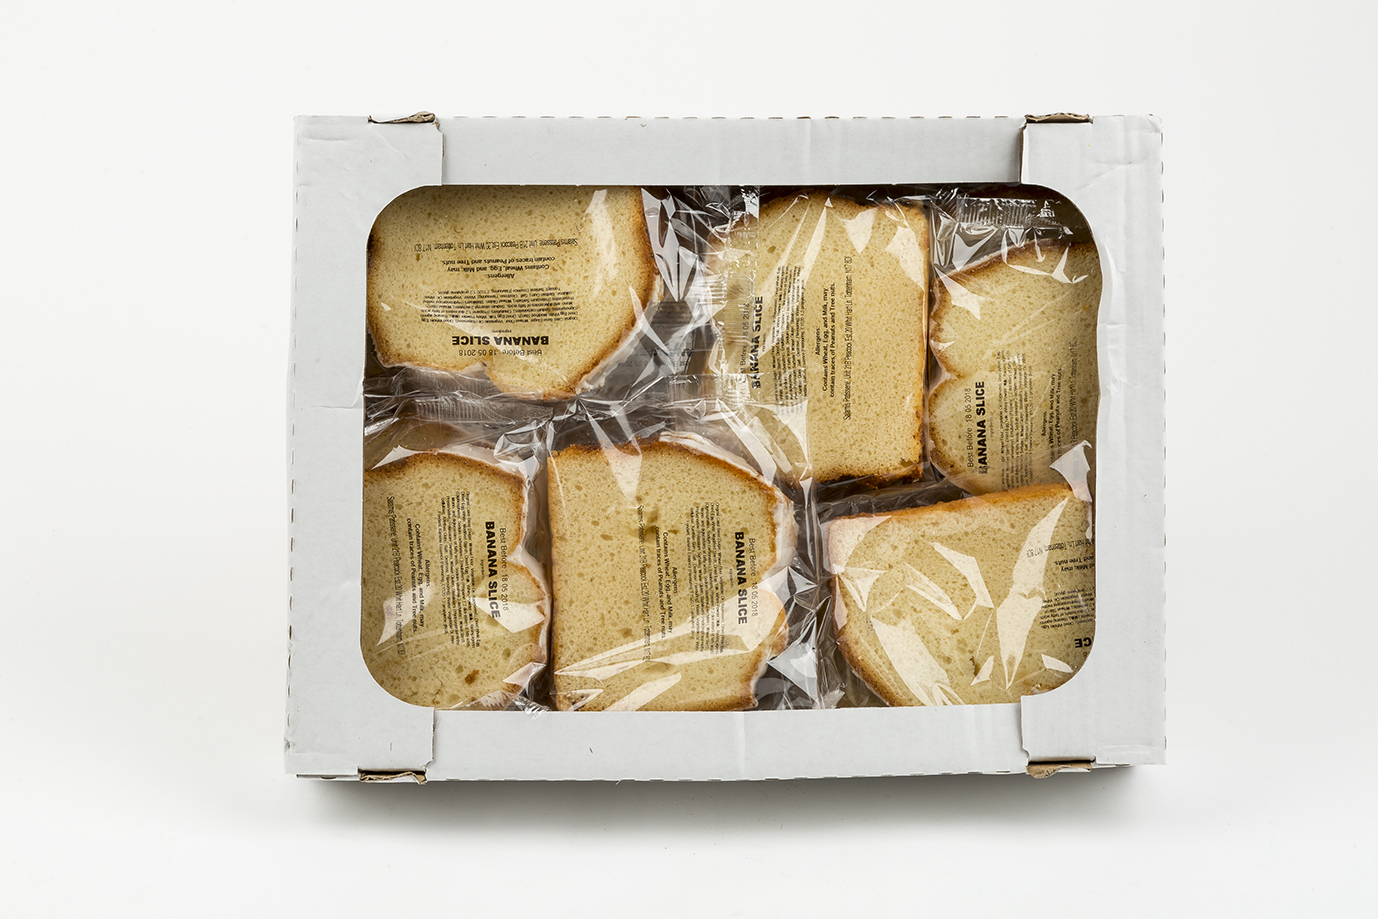 Box of wrapped Banana cake slices x 18